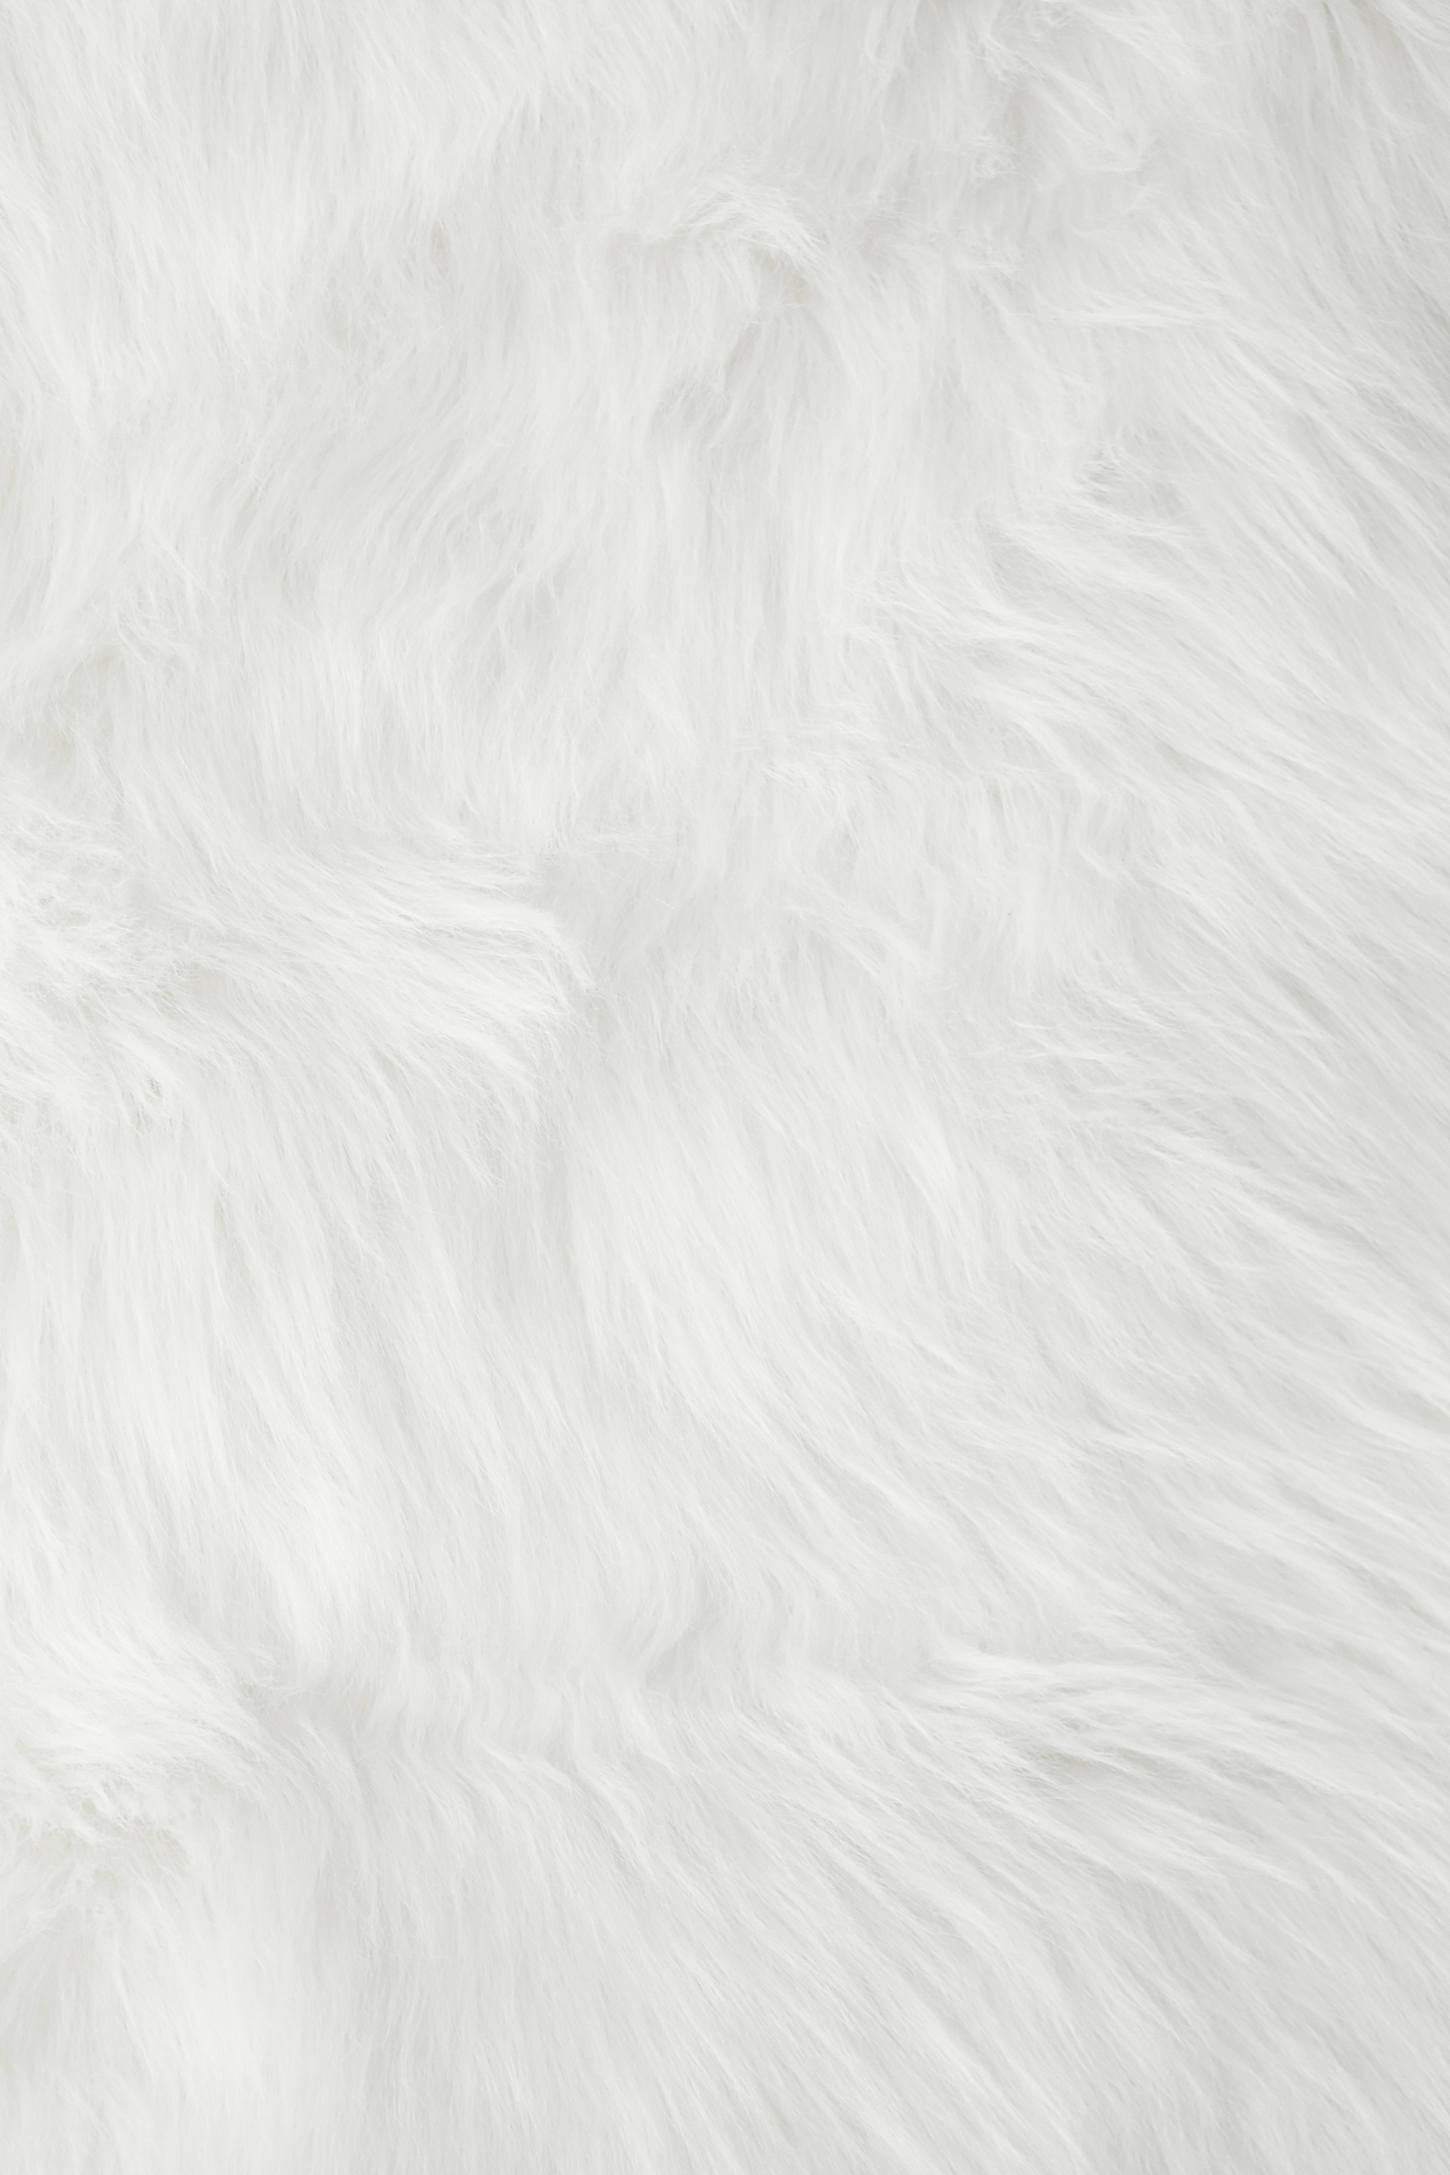 Slide View: 5: Faux Sheep Skin Rug